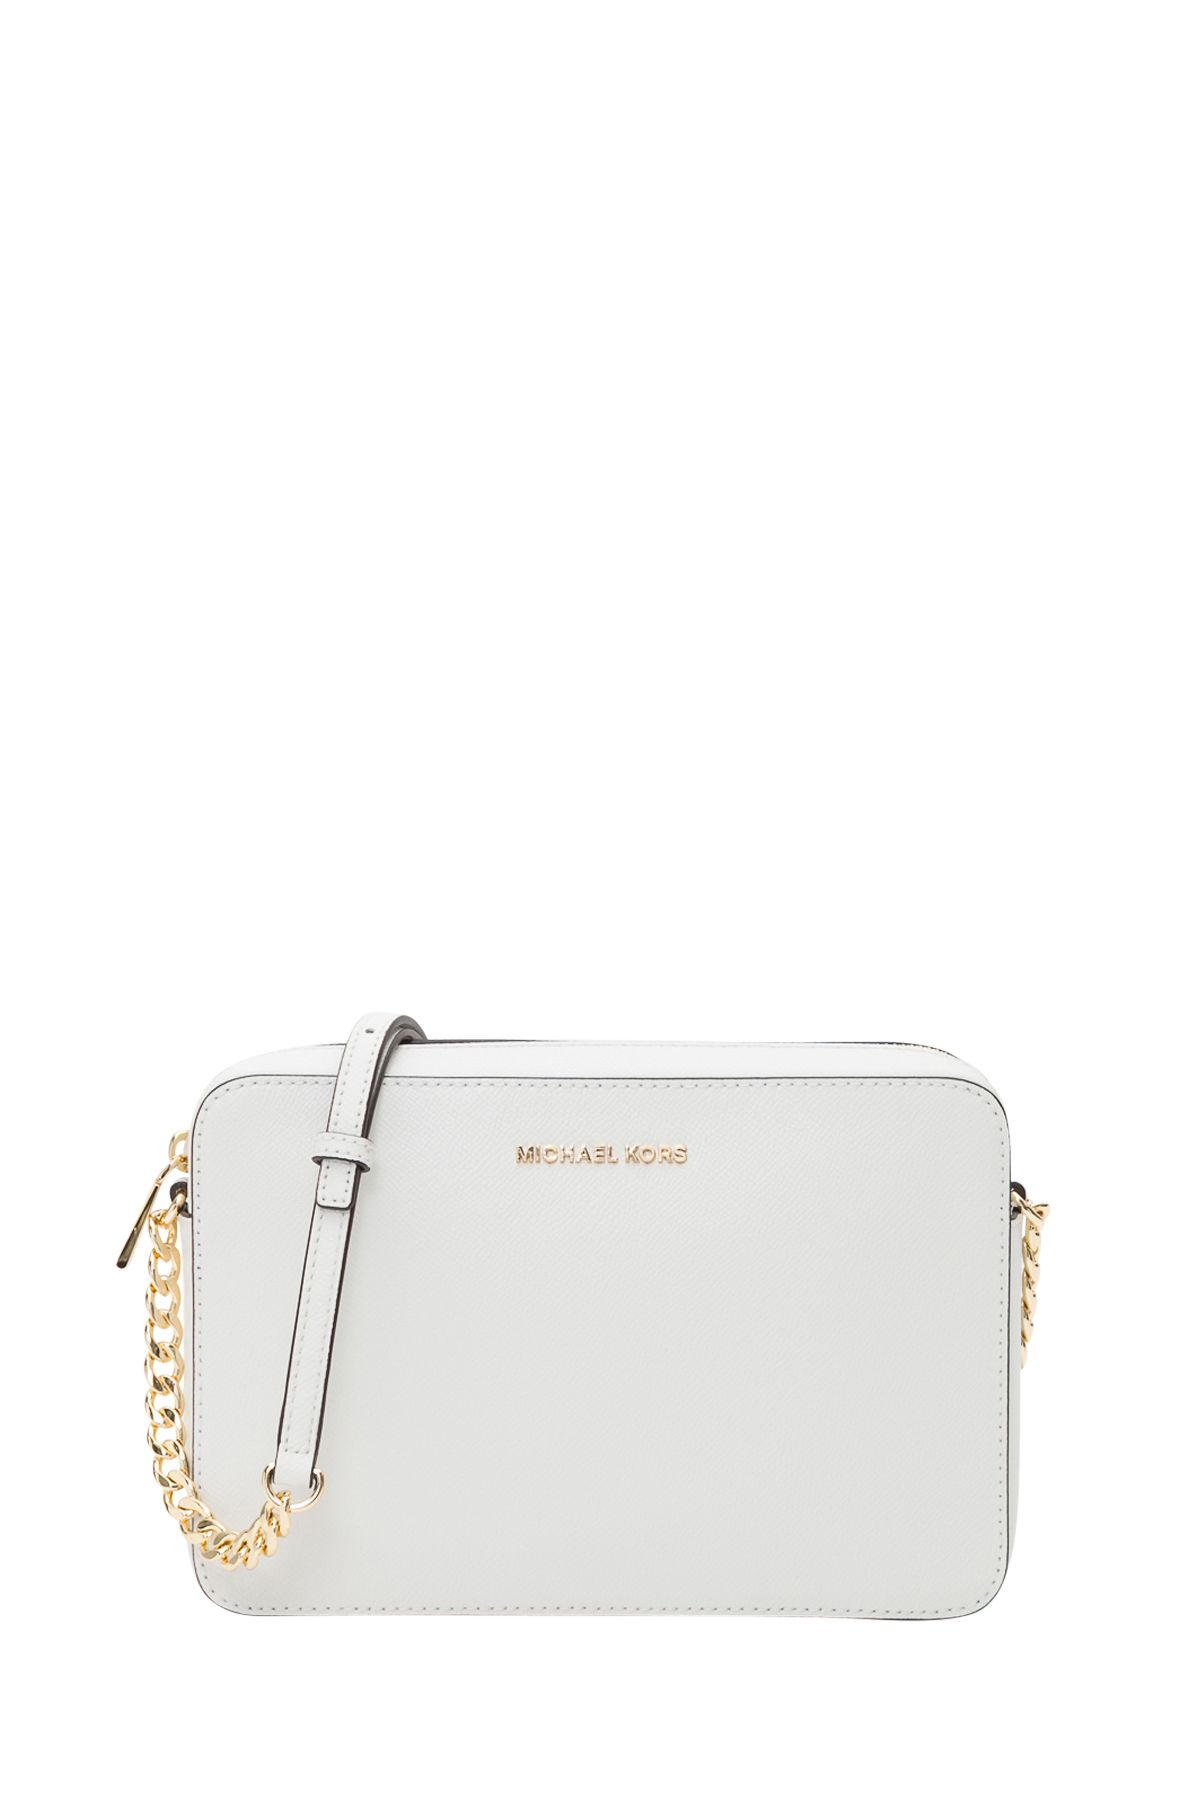 6001ec91435f MICHAEL Michael Kors Jet Set Travel Saffiano Leather Crossbody Bag - Bianco  ...